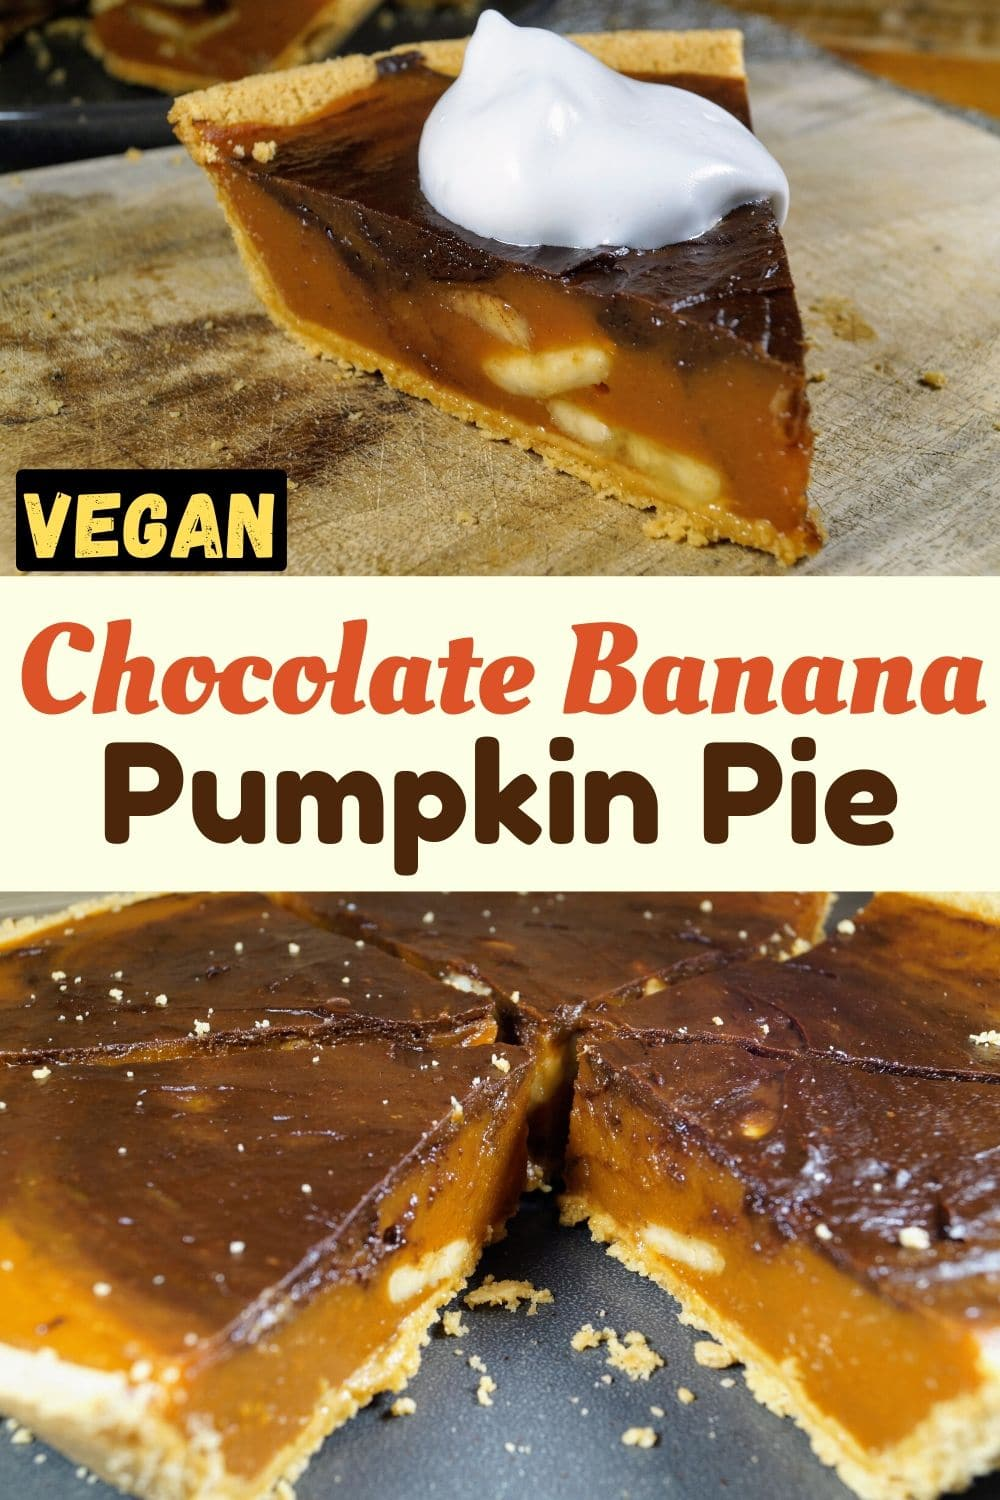 Vegan Chocolate Banana Pumpkin Pie for Pinterest